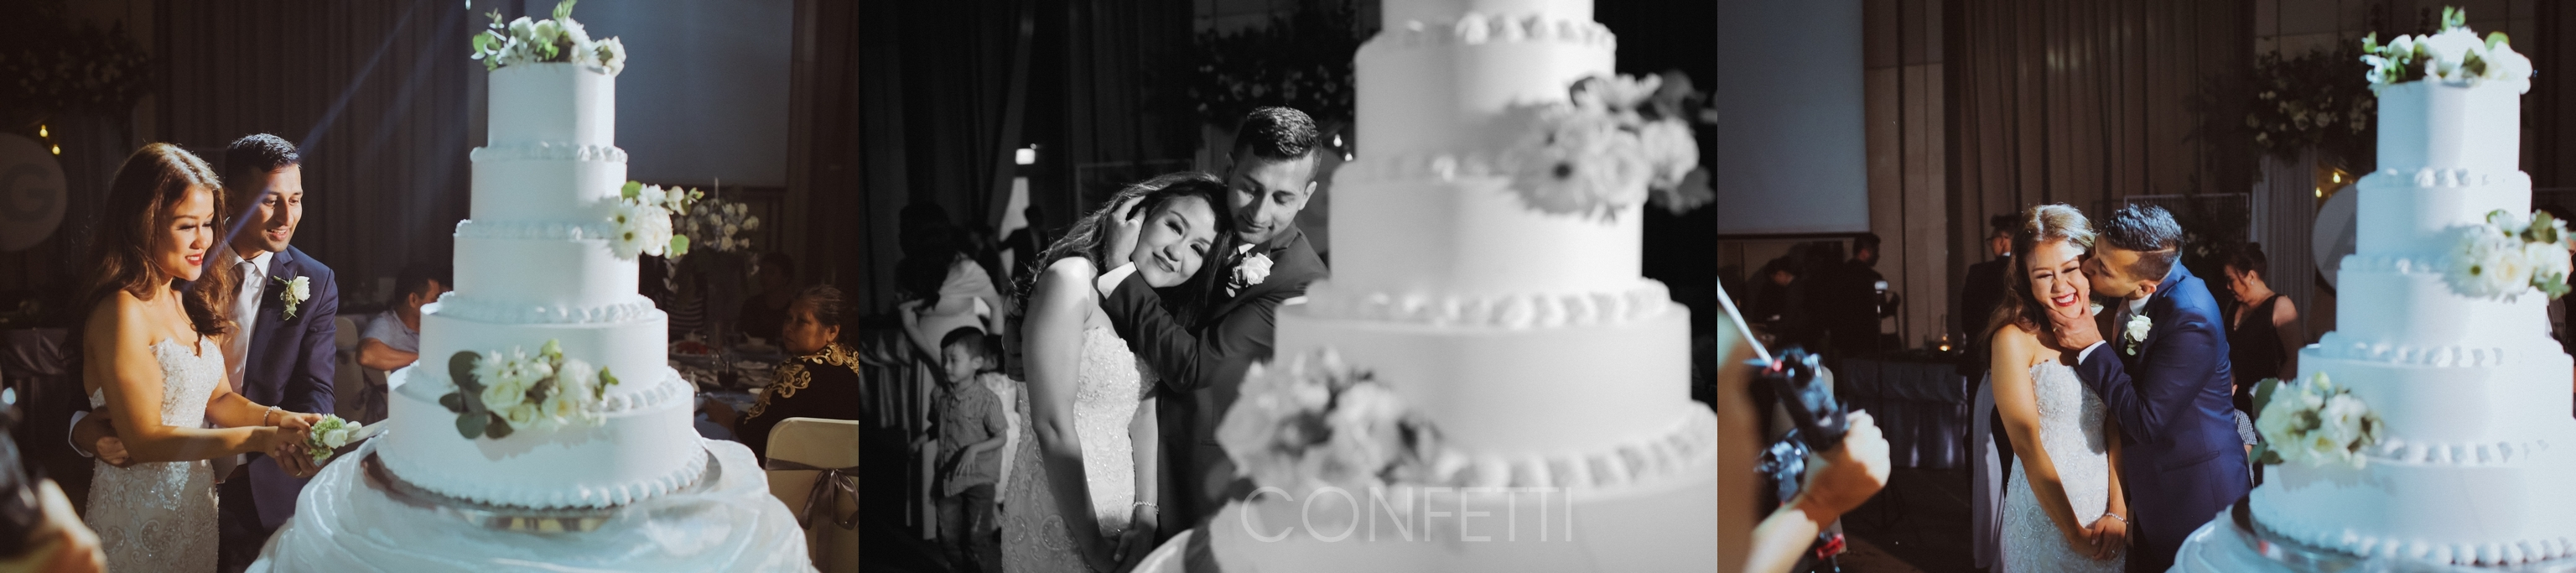 Confetti-real-wedding-Together-we-have-it-all (55)